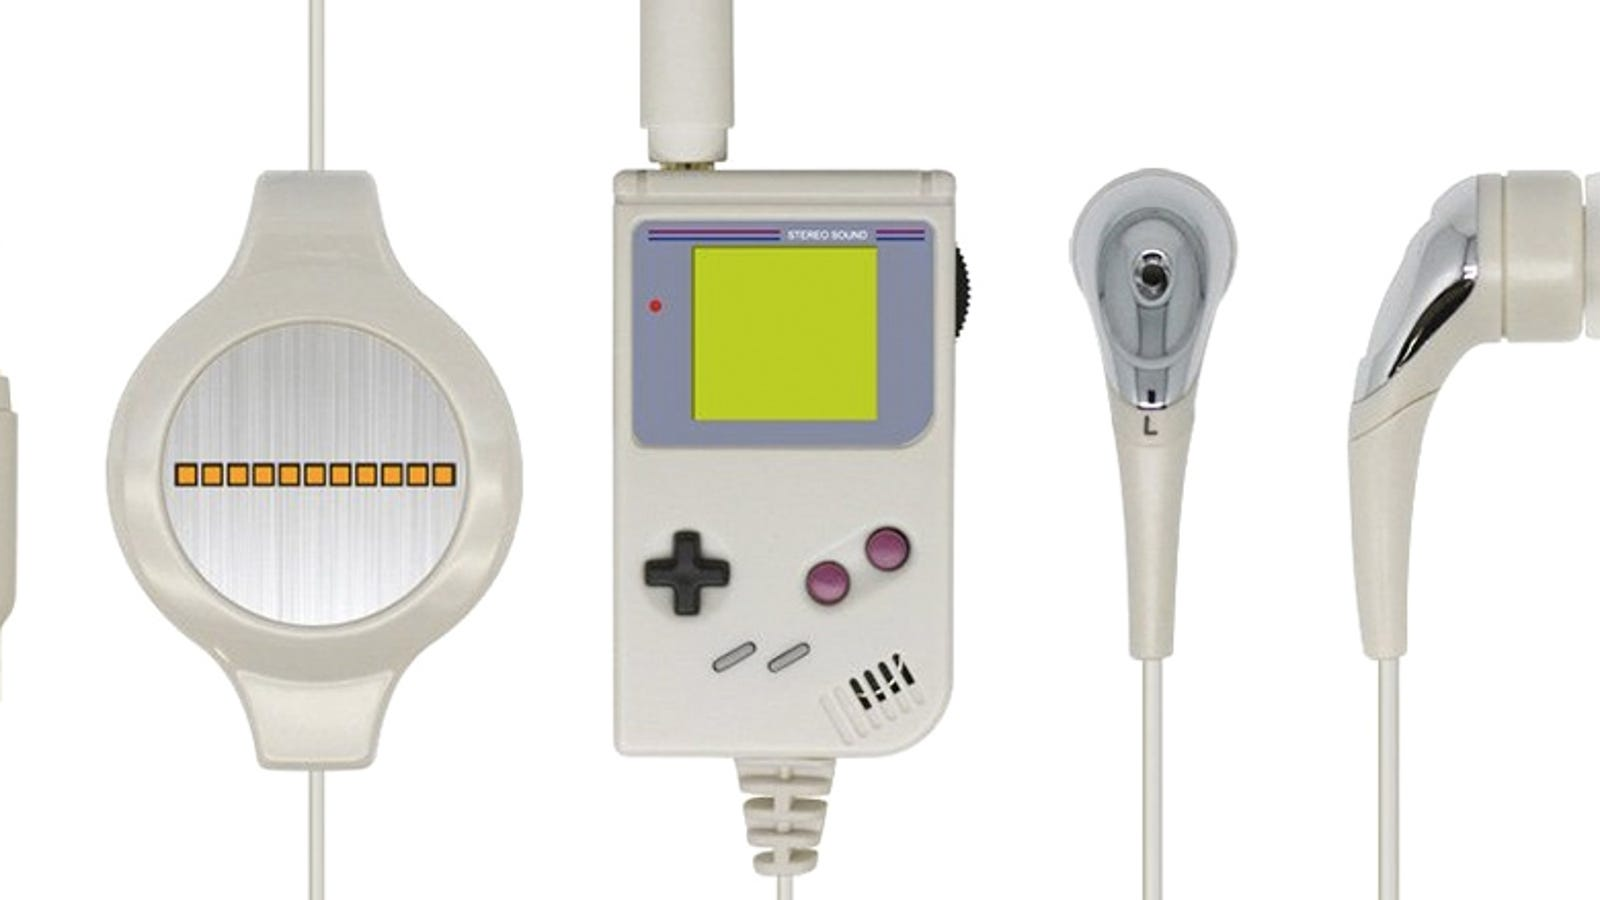 ear buds s3000 - These Tiny Game Boy Headphones Are Wonderful, Even If They Sound Awful